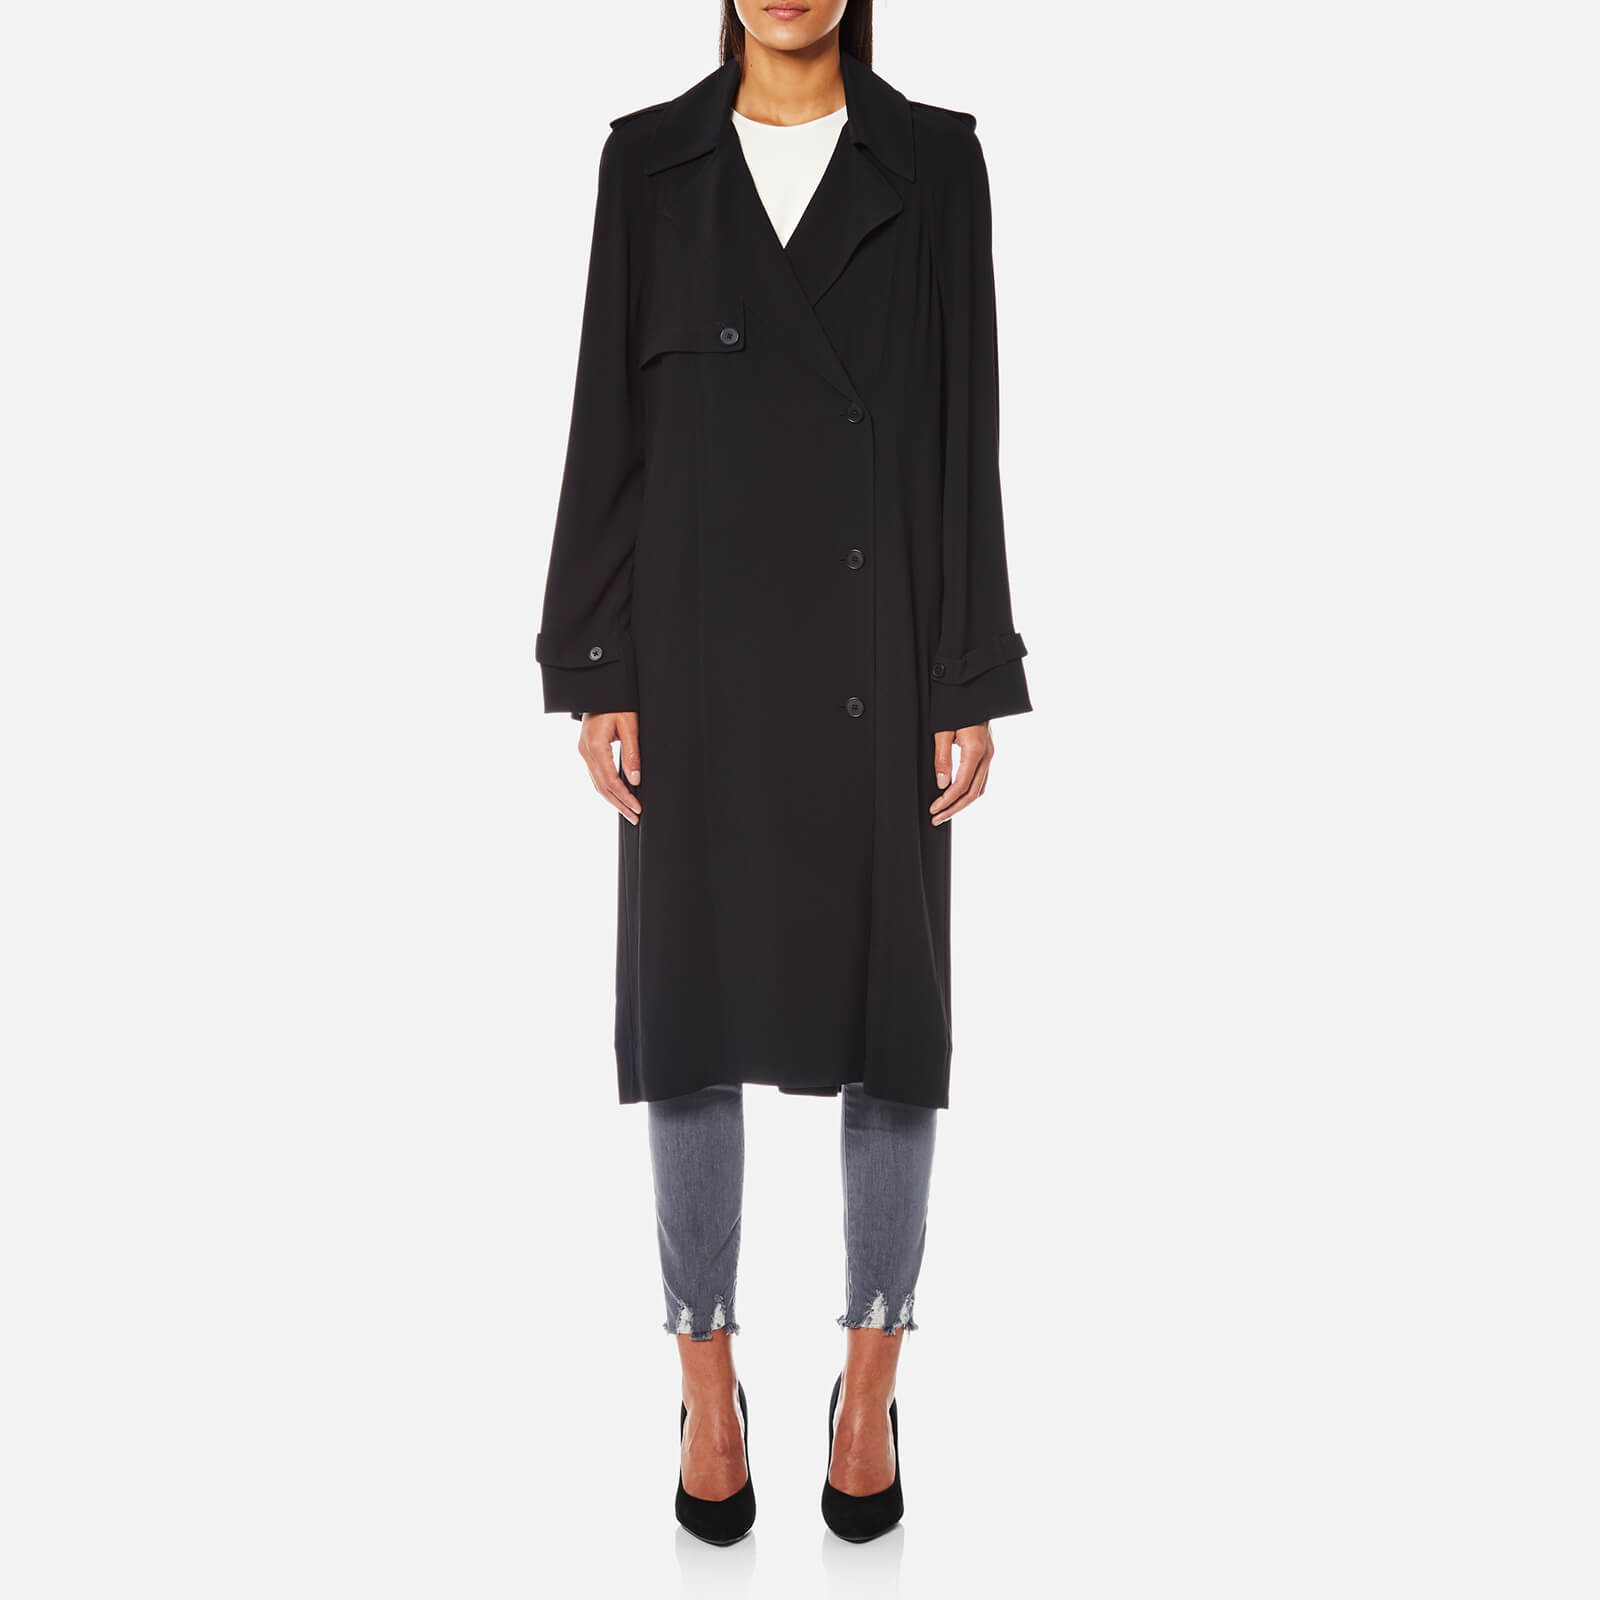 10ad1a5c6ffdd4 Helmut Lang Women s Trench Coat Dress with Satin Belt - Black - Free ...